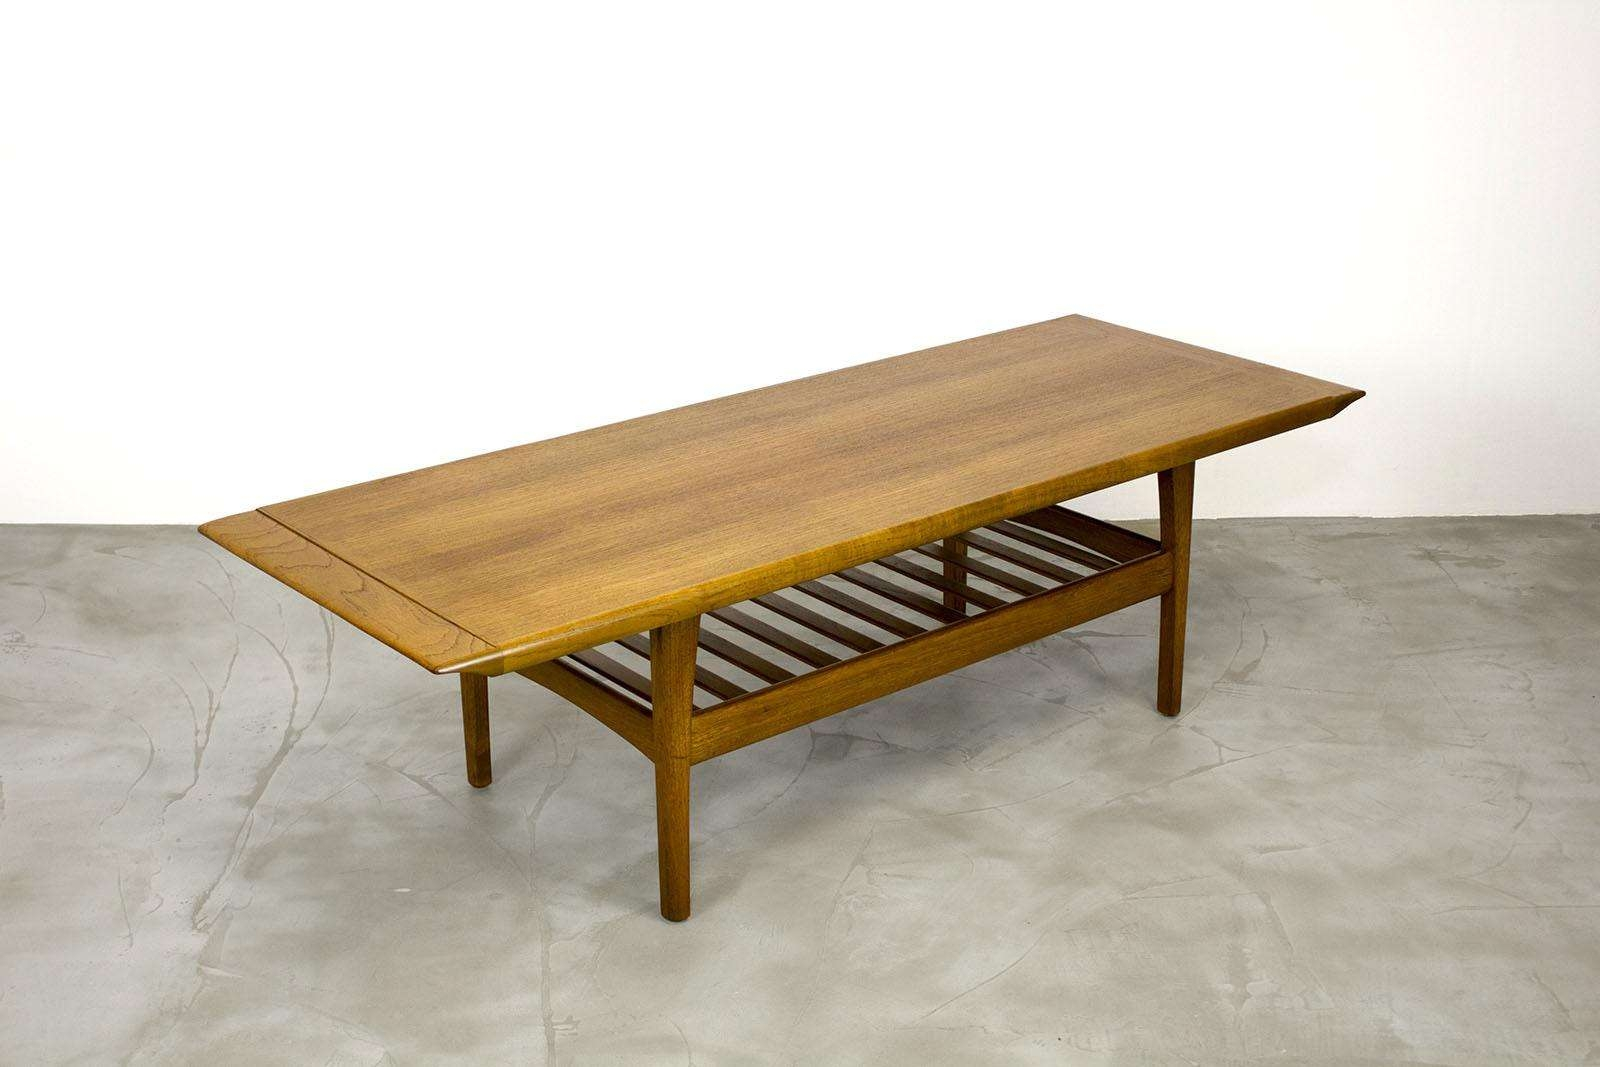 Danish Teak Coffee Table With Magazine Shelf, 1960S For Sale At Pamono Within Widely Used Coffee Tables With Magazine Rack (View 3 of 20)